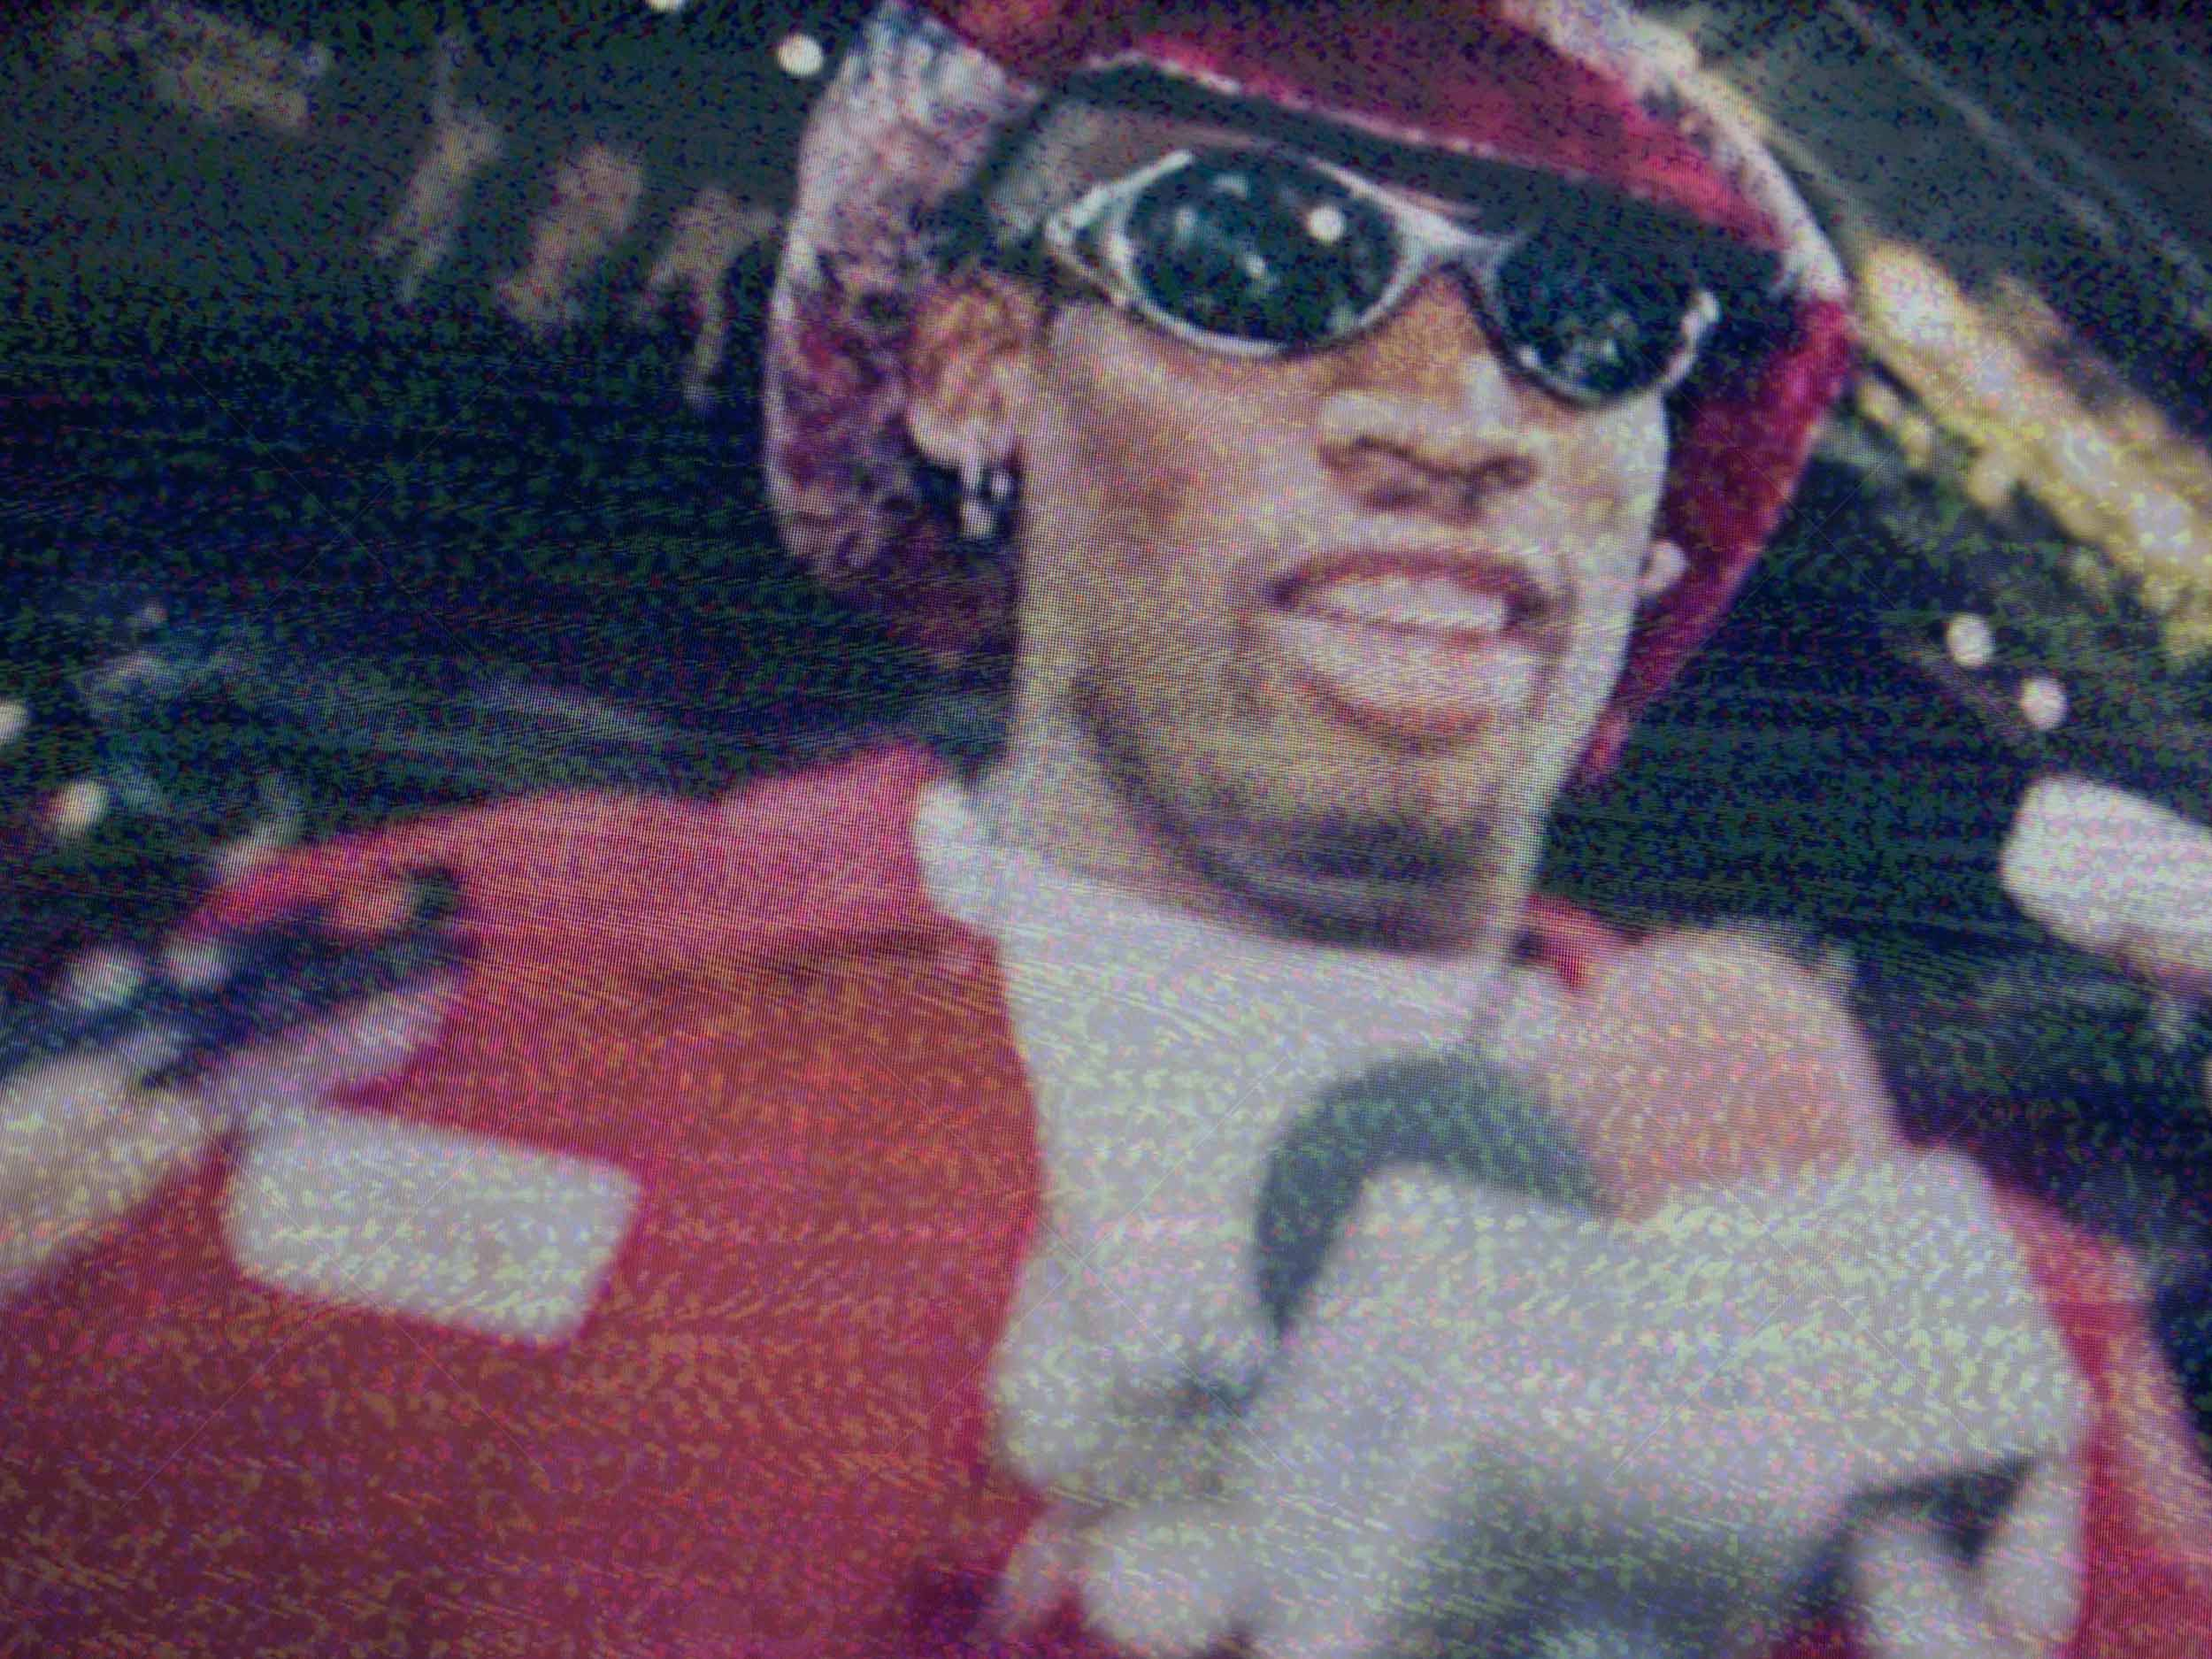 Dennis Rodman was Black boy joy before it was acceptable